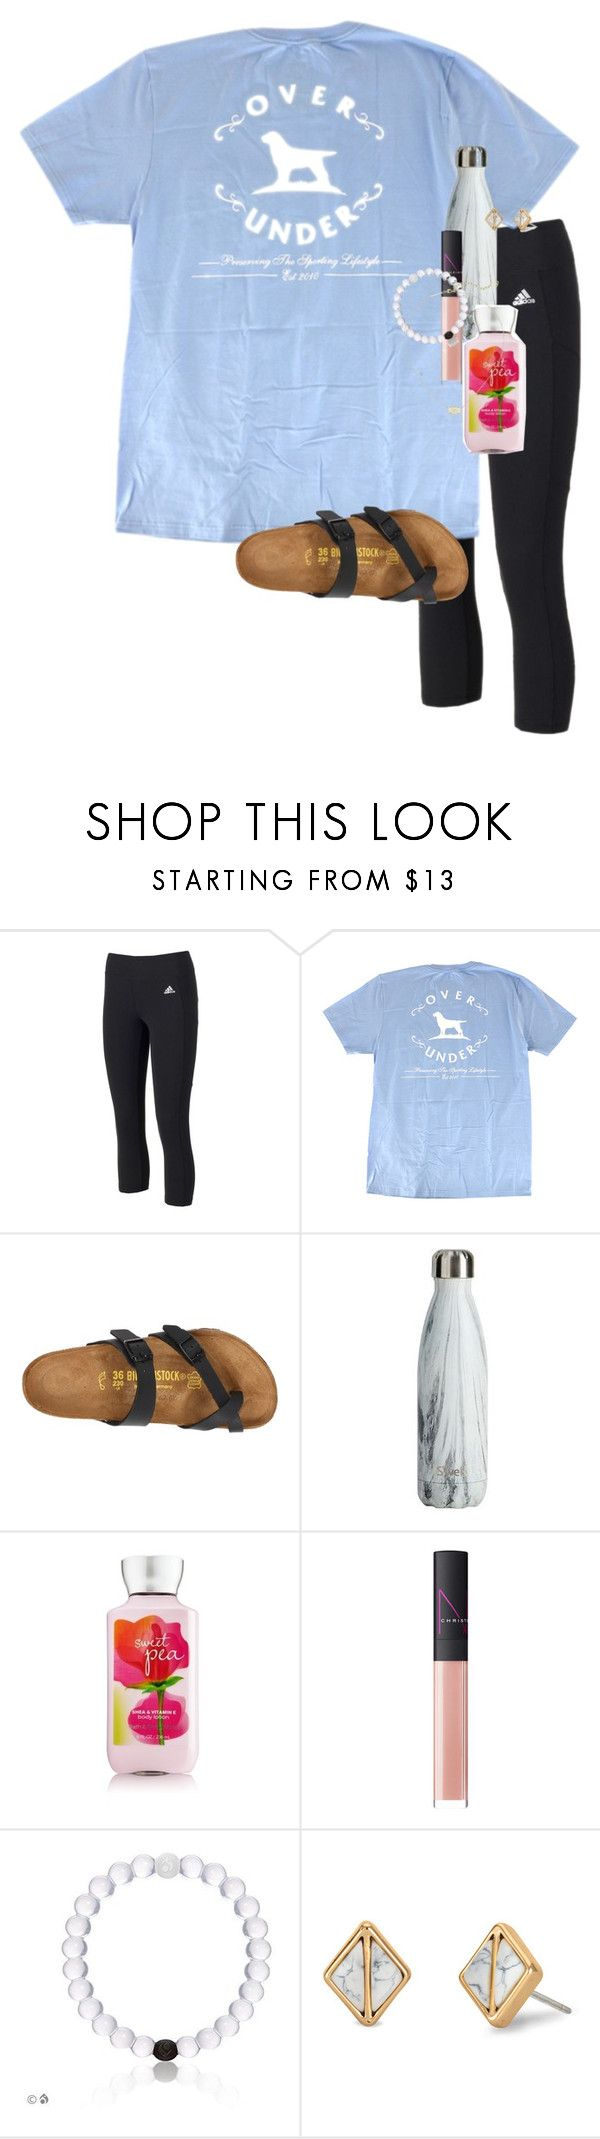 """""""This outfit is eh"""" by erinlmarkel ❤ liked on Polyvore featuring adidas, Birkenstock, NARS Cosmetics, Stella & Dot and Kendra Scott"""